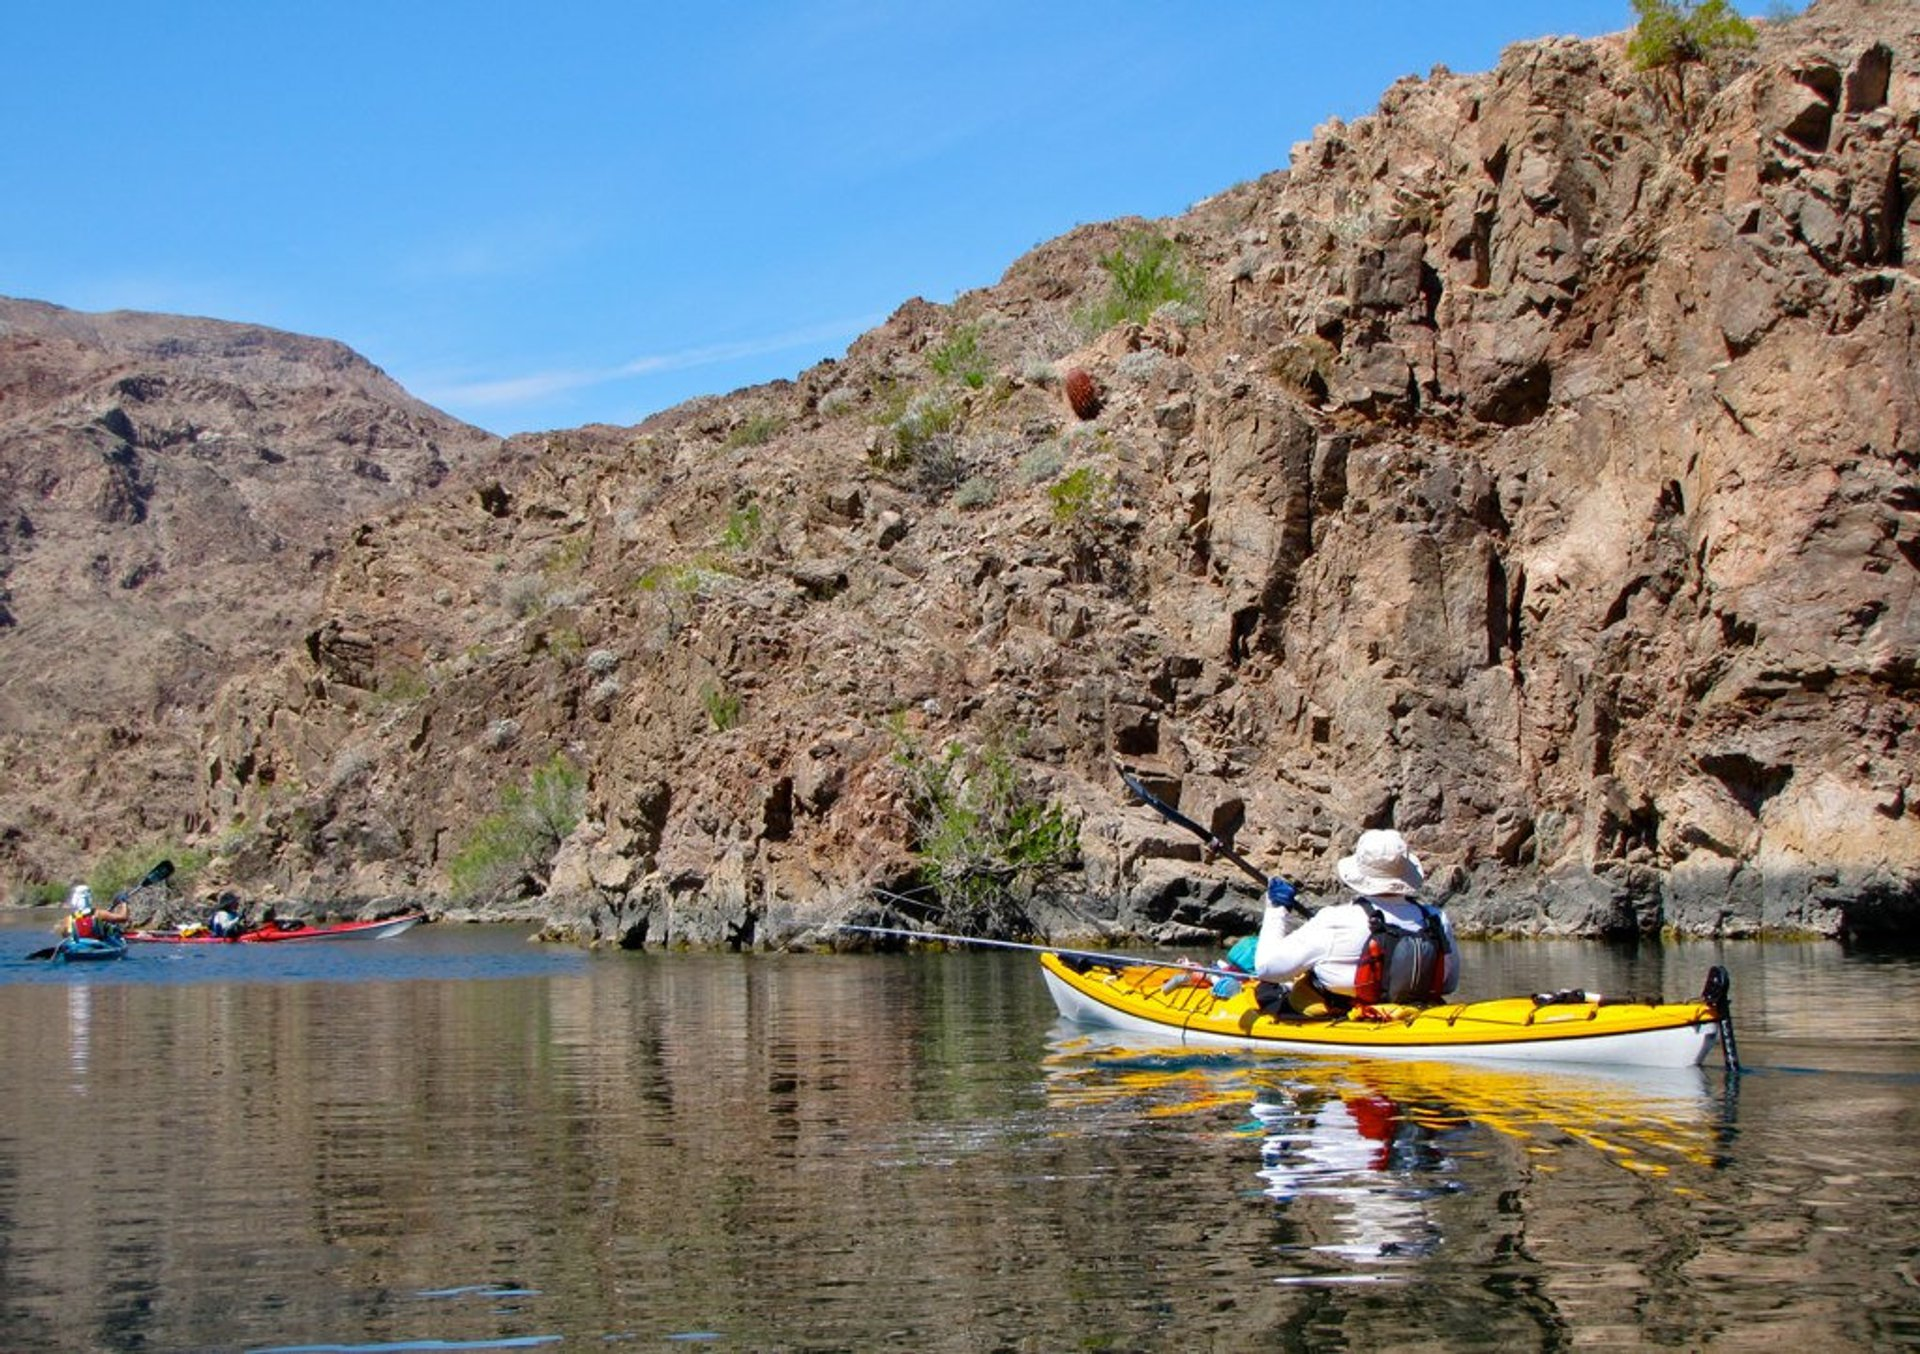 Kayaking in Nevada 2019 - Best Time